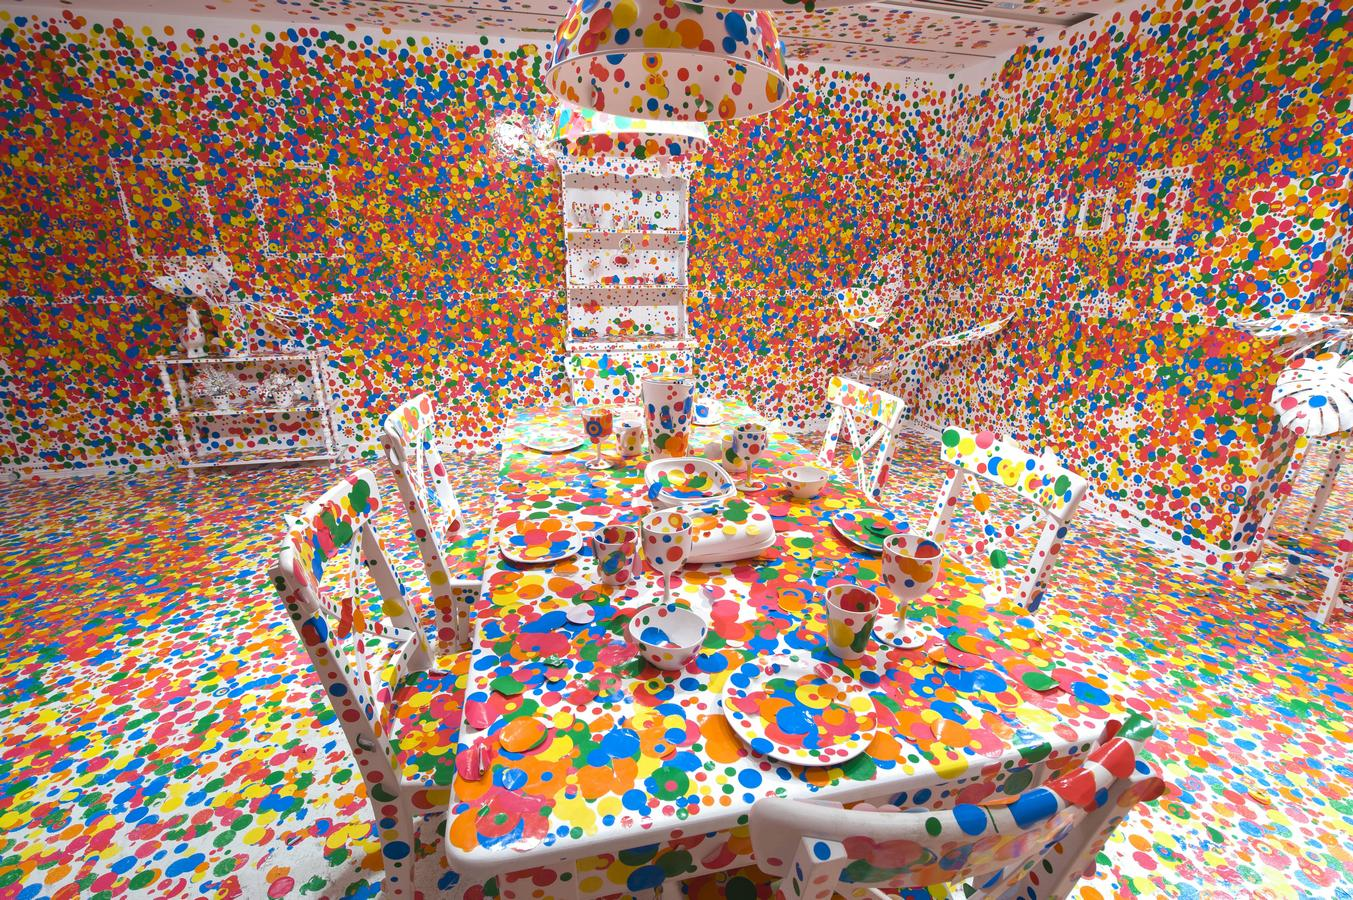 kusama-the-obliteration-room.jpg